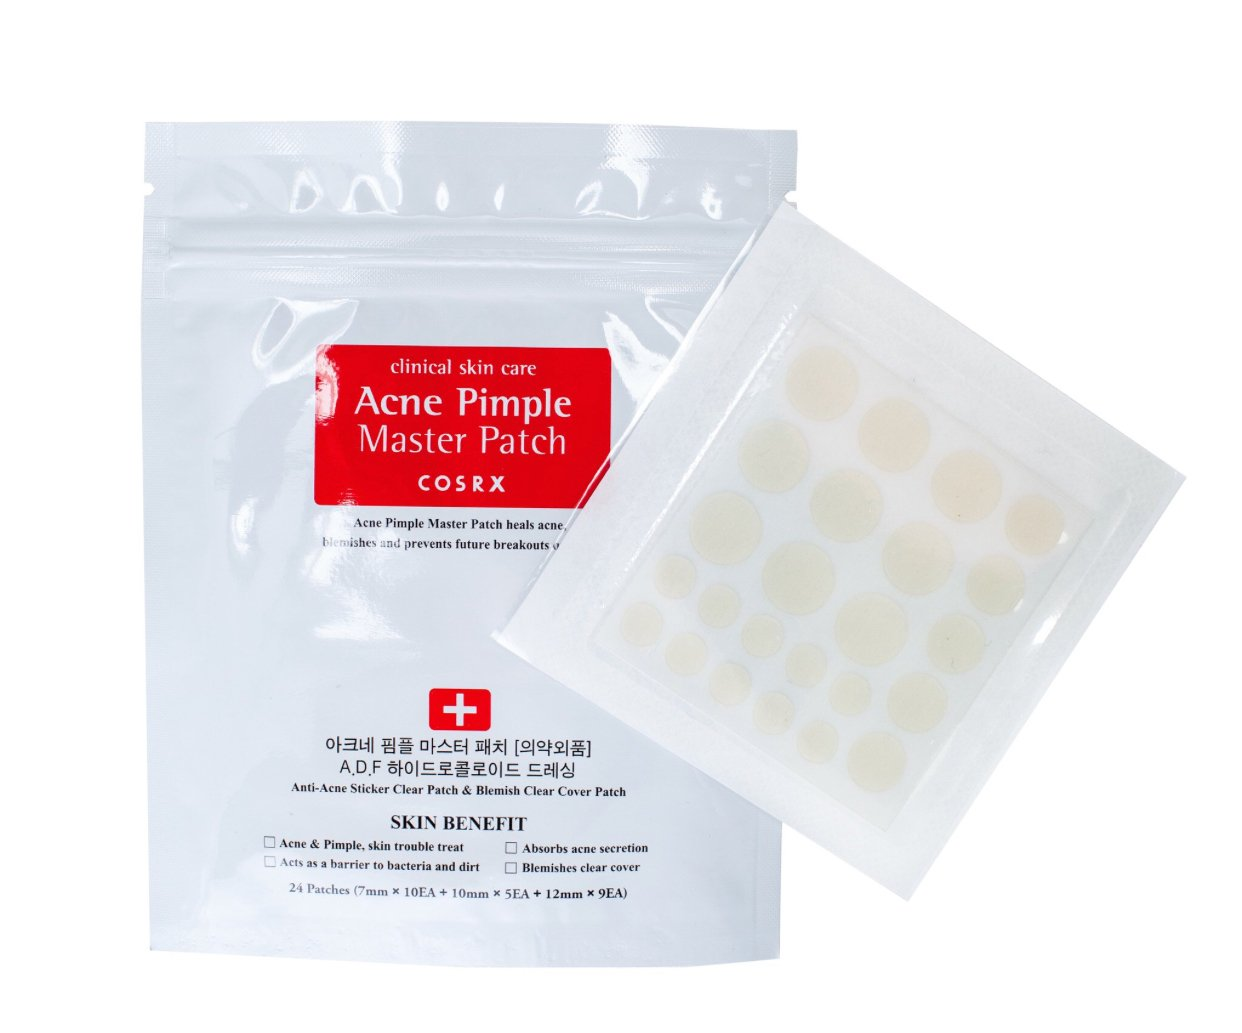 Cosrx Acne Pimple Master Patch 24patches MULTI PACKS